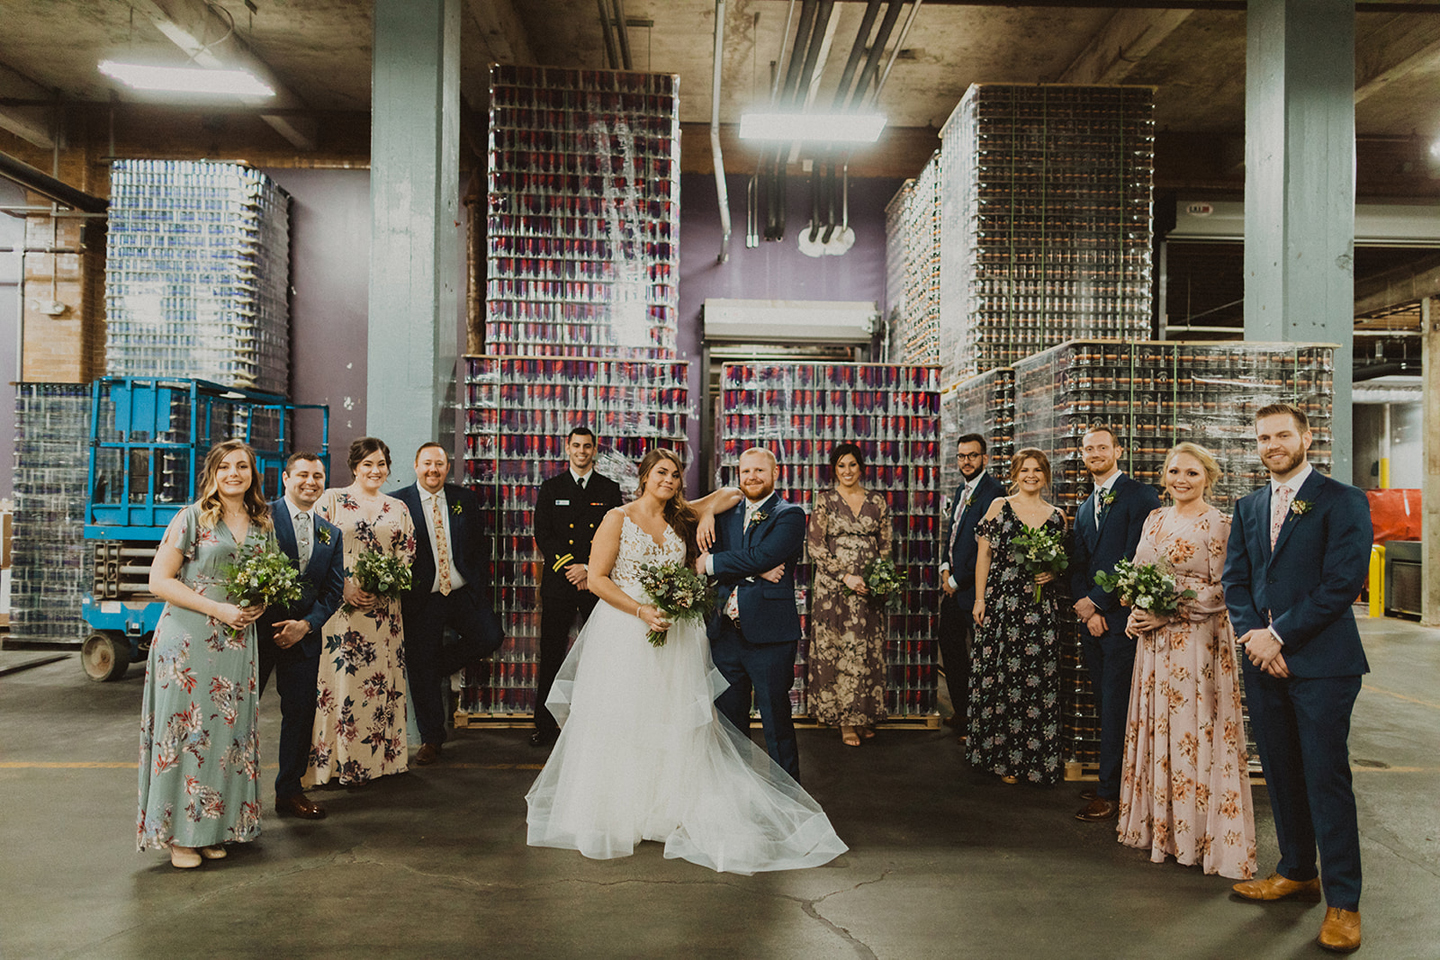 Becca-Tyler-Beer-Warehouse-Couture-Closet-Hayley-Paige-Madeline-Thompson.jpg